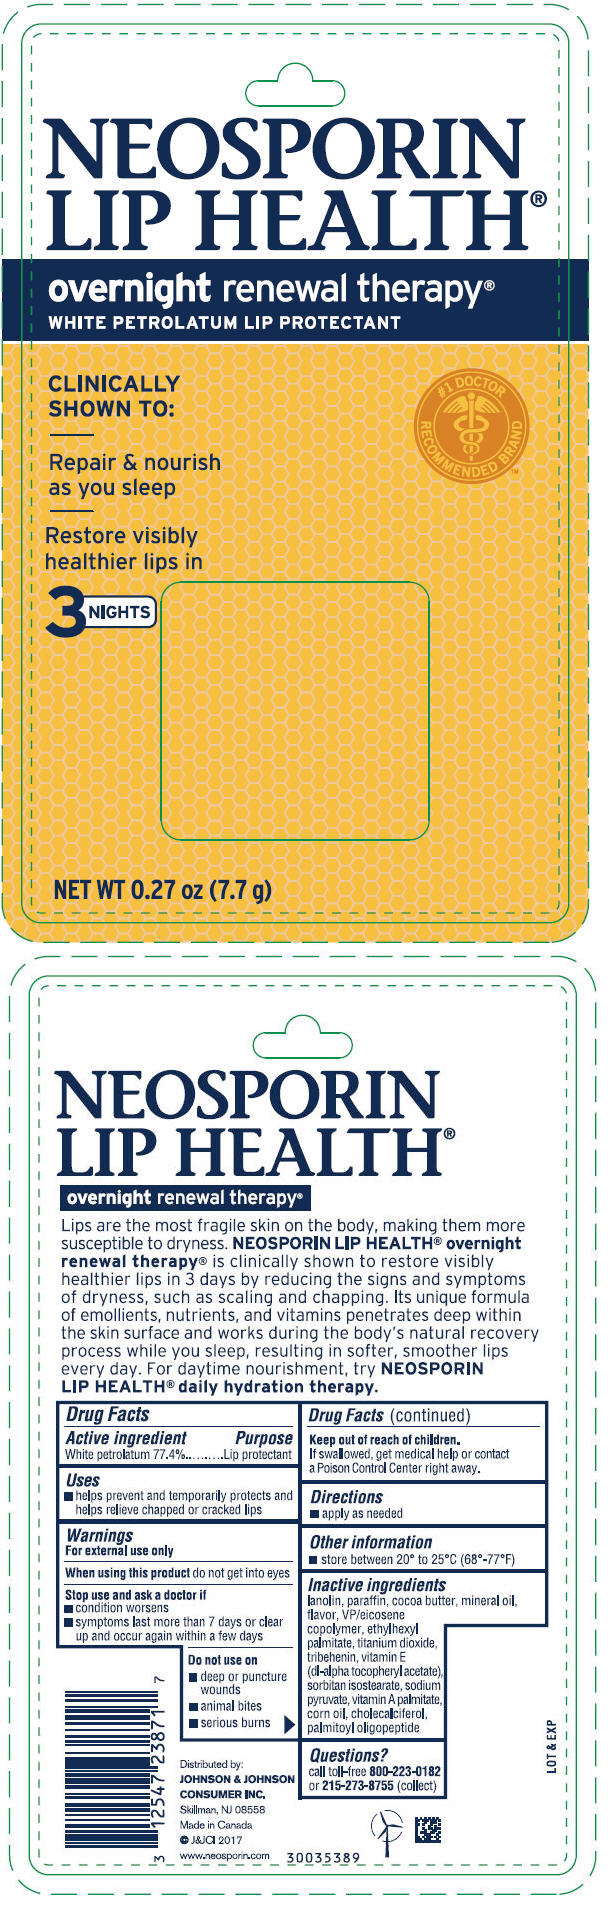 Petrolatum - Overnight Renewal Therapy (Neosporin Lip Health)